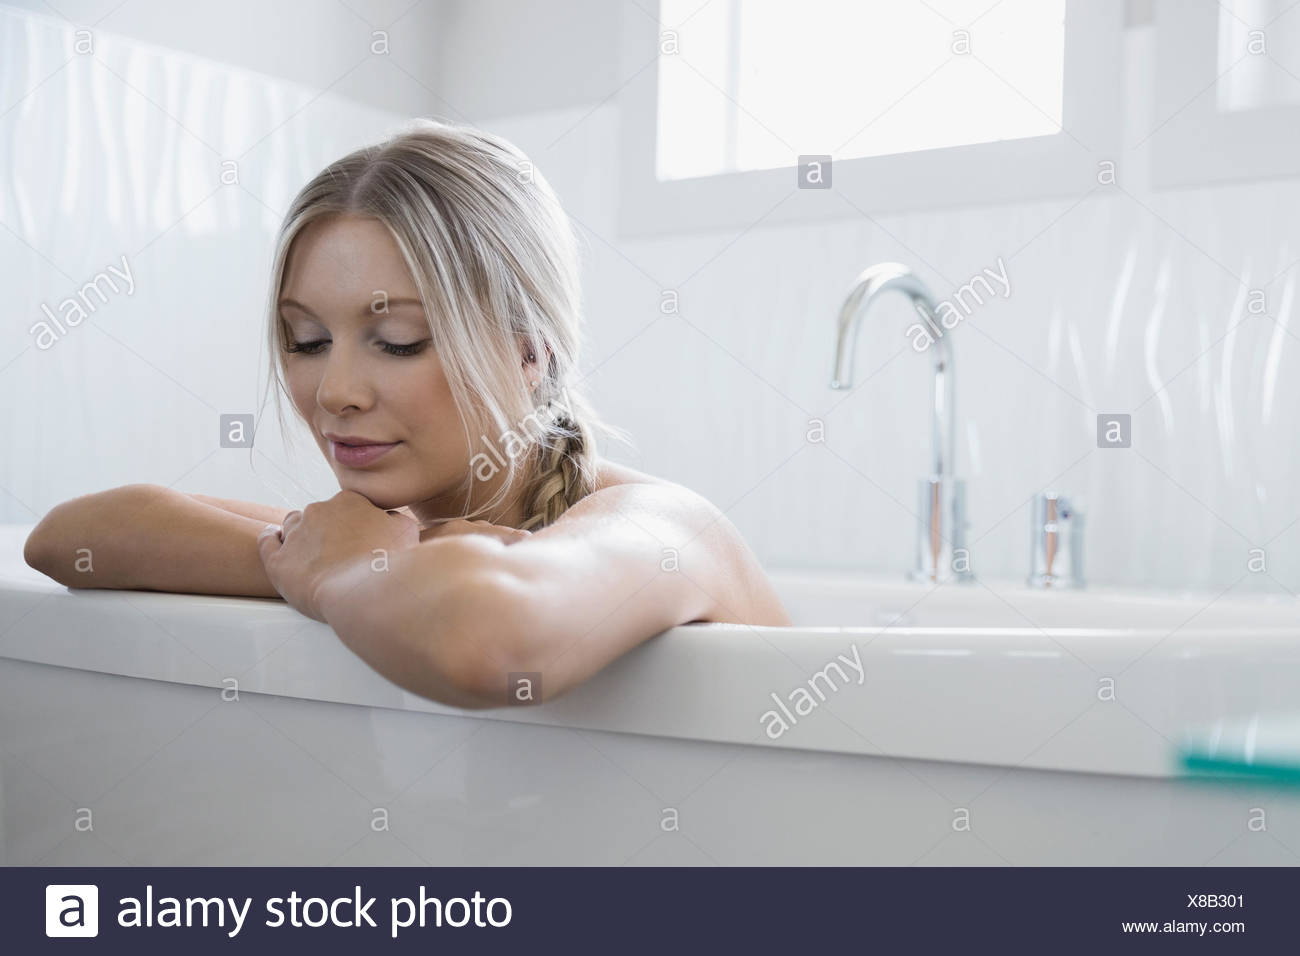 Calm woman relaxing in bathtub - Stock Image